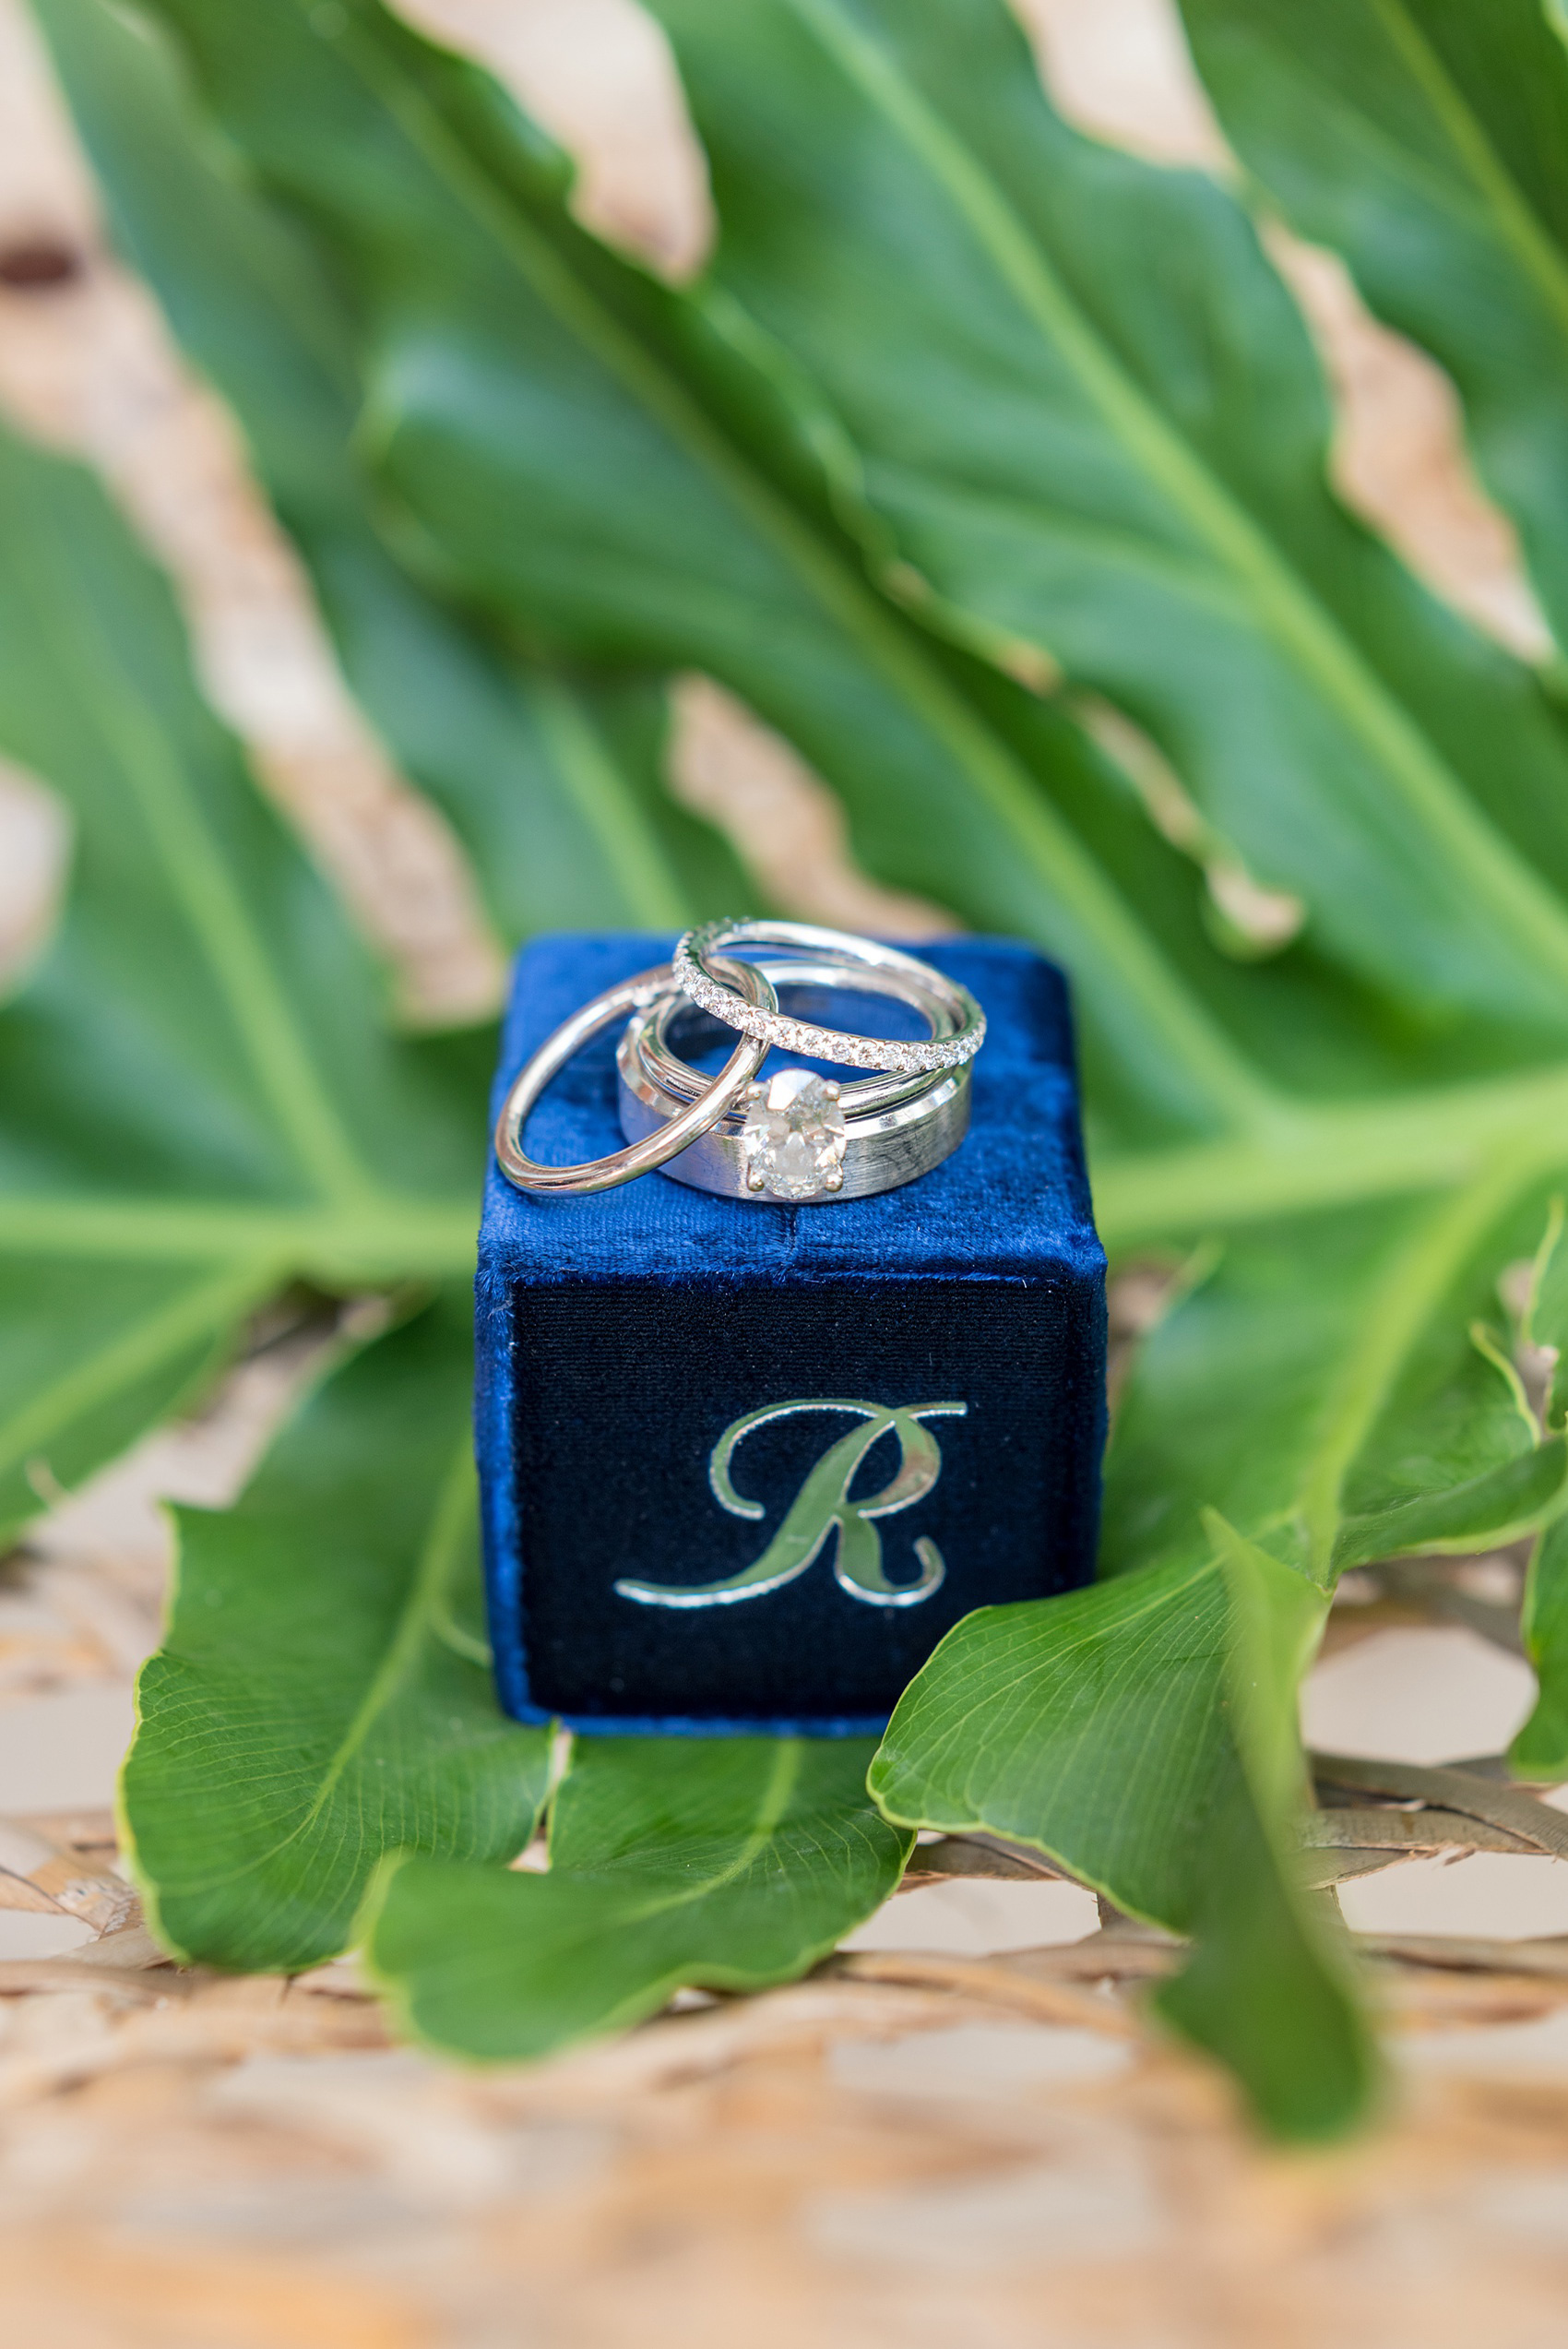 If you're planning a destination wedding Casa de Campo in the Dominican Republic is a great location. It's in La Romana, an hour from Punta Cana, and is an all inclusive resort with Minitas beach and mountains view. It's a beautiful venue, evidenced by these pictures by Mikkel Paige Photography. Click through for detail ideas like this velvet ring box + tropical leaf photo! Coordination by @theeventeur. #mikkelpaige #bluewedding #themrsbox #velvetringbox #ringphotos #weddingdetails